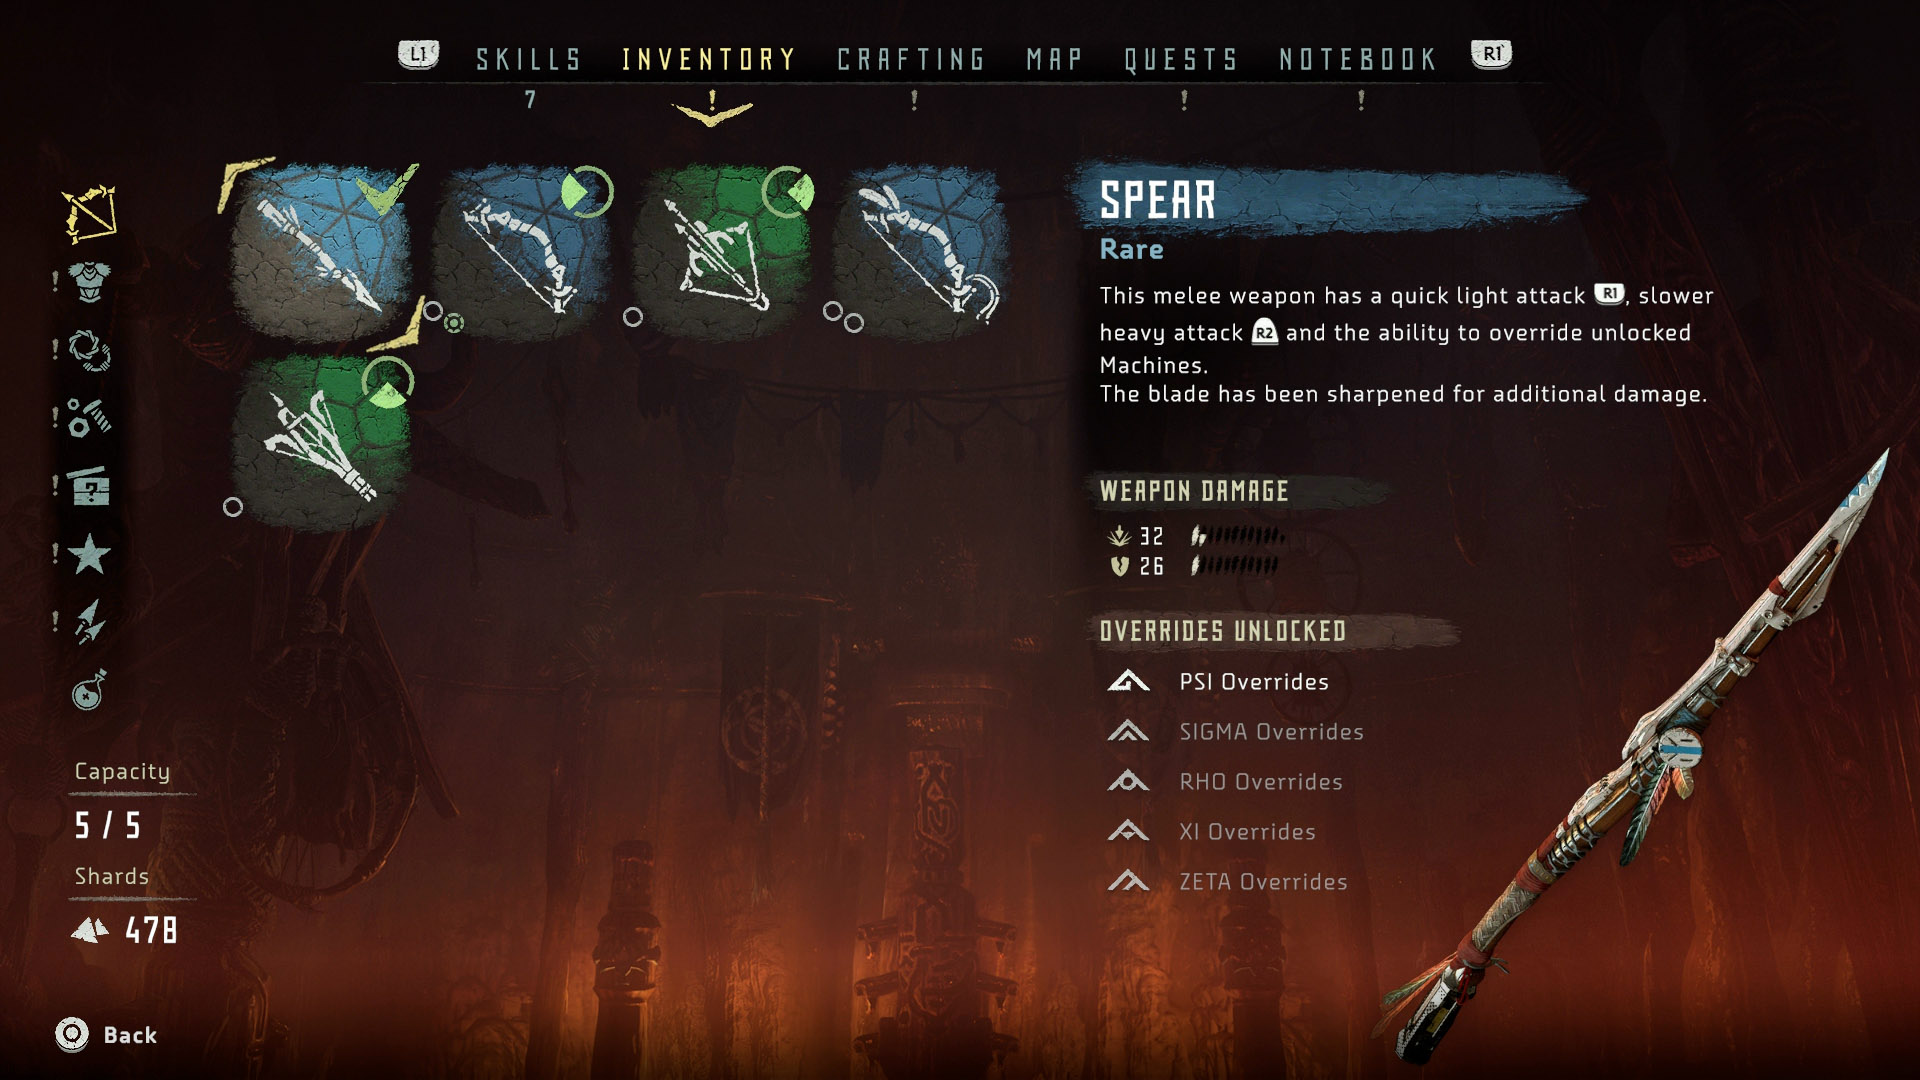 Once unlocked, the Override Device is attached to your spear.